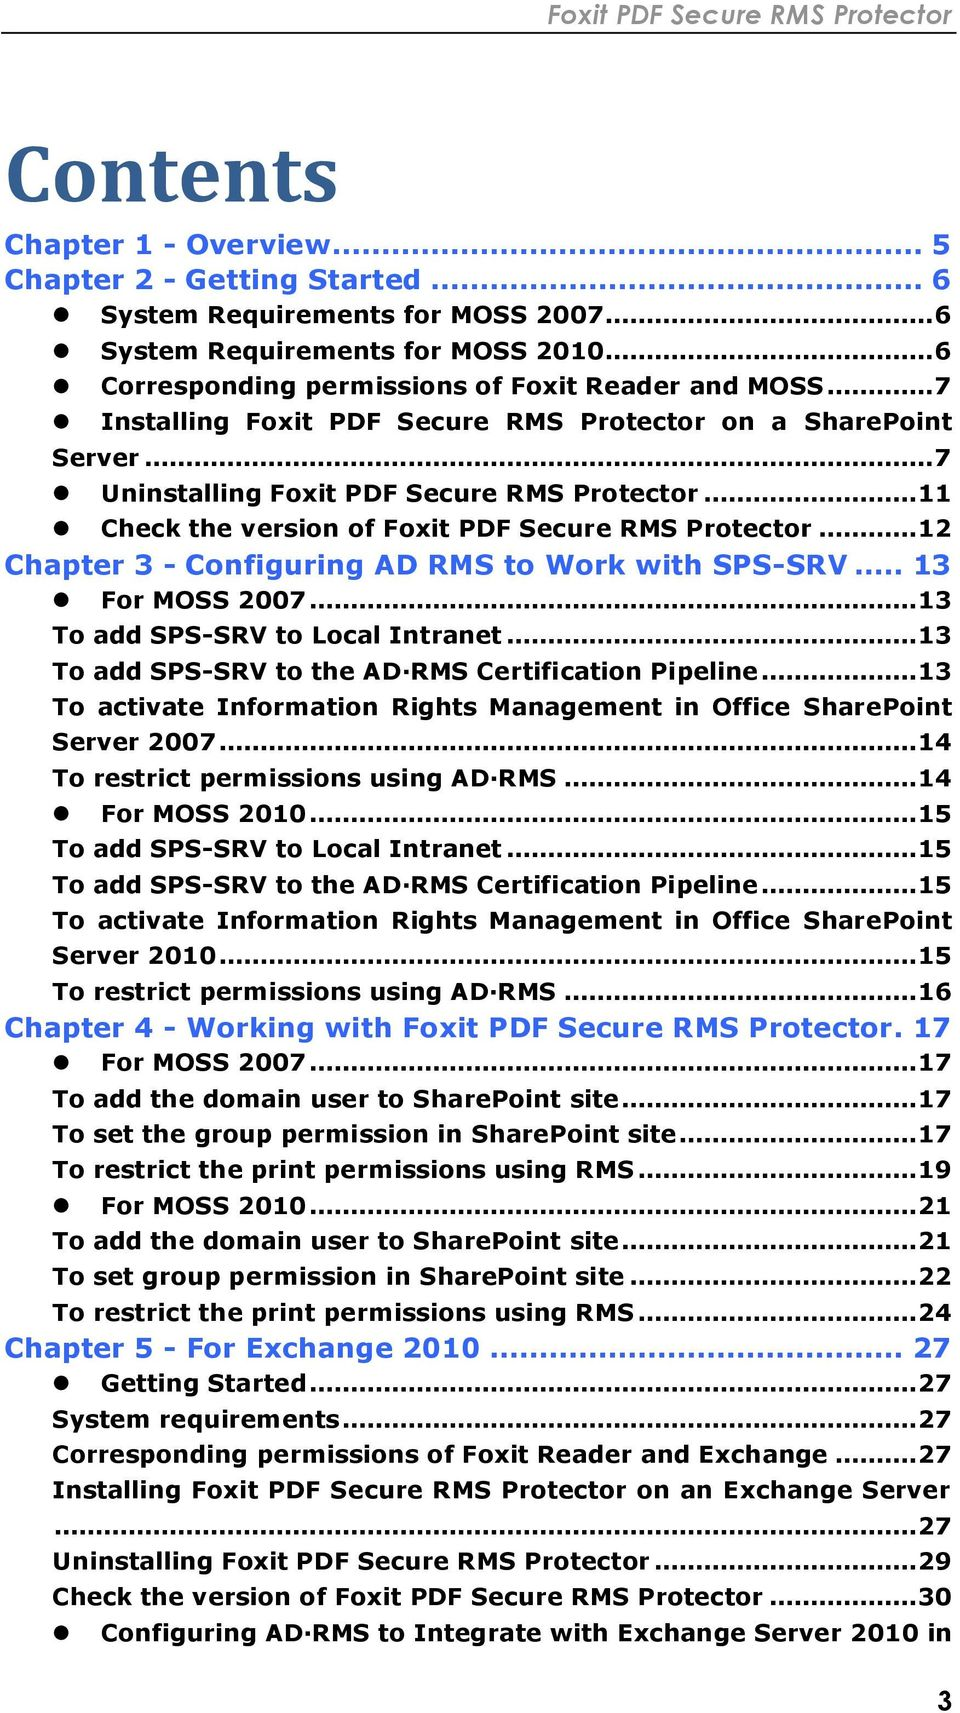 Foxit PDF Secure RMS Protector  (SharePoint Extensions) - PDF